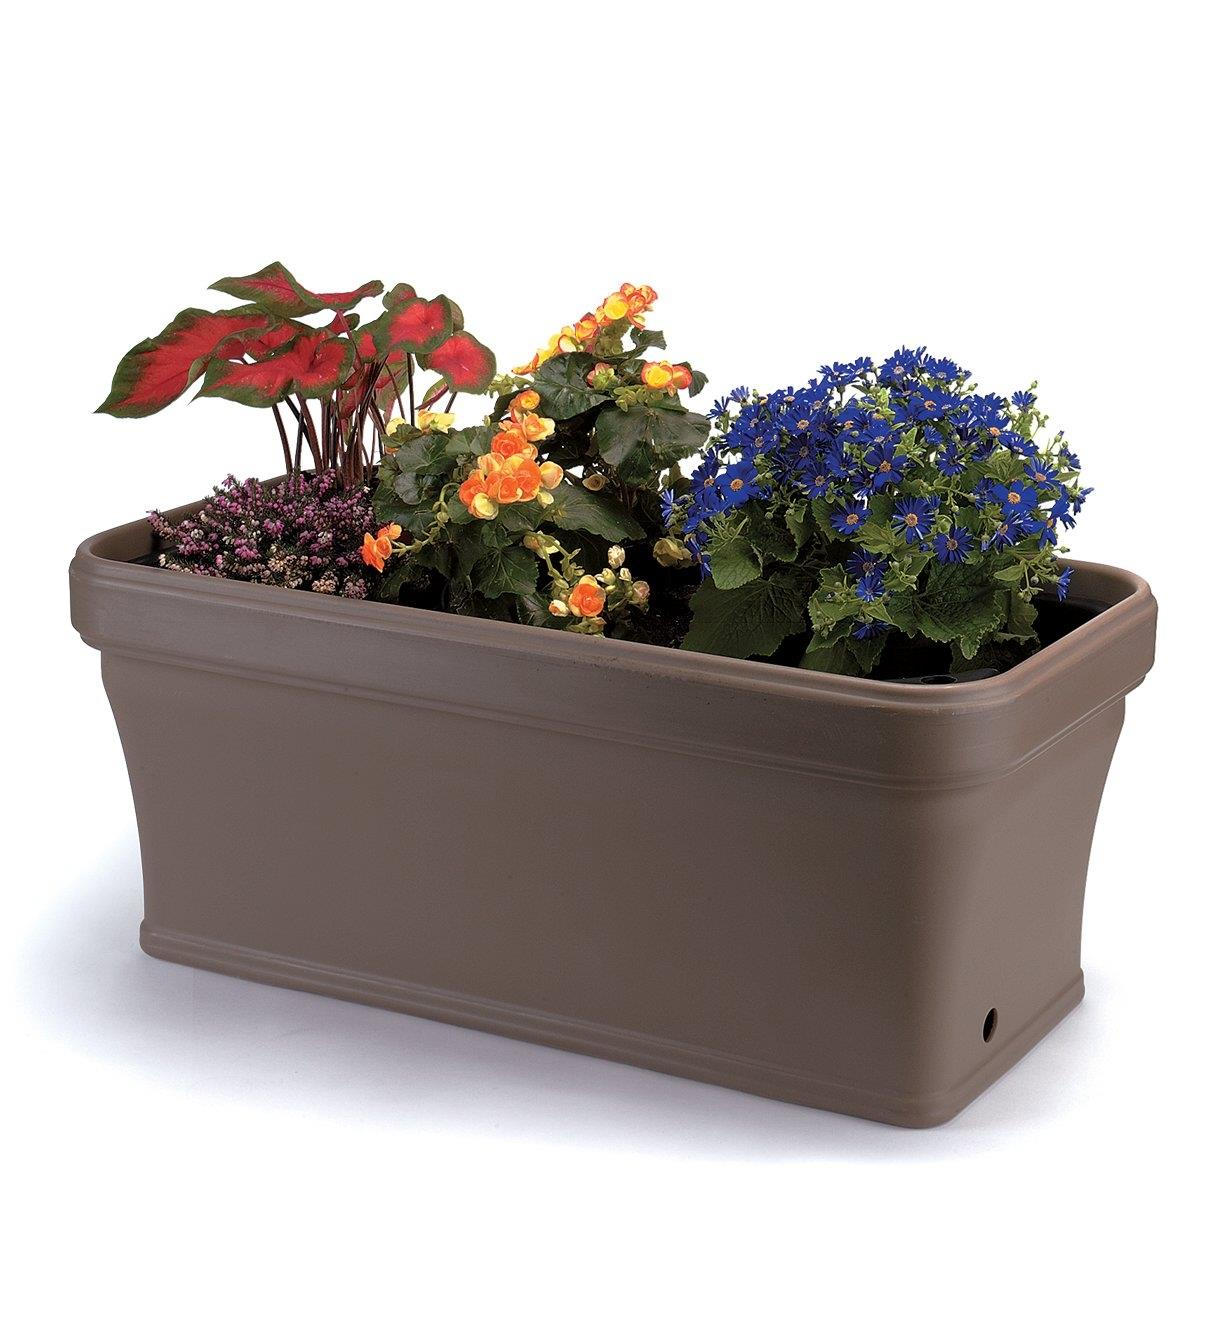 A variety of flowers growing in the Self-Watering Planter